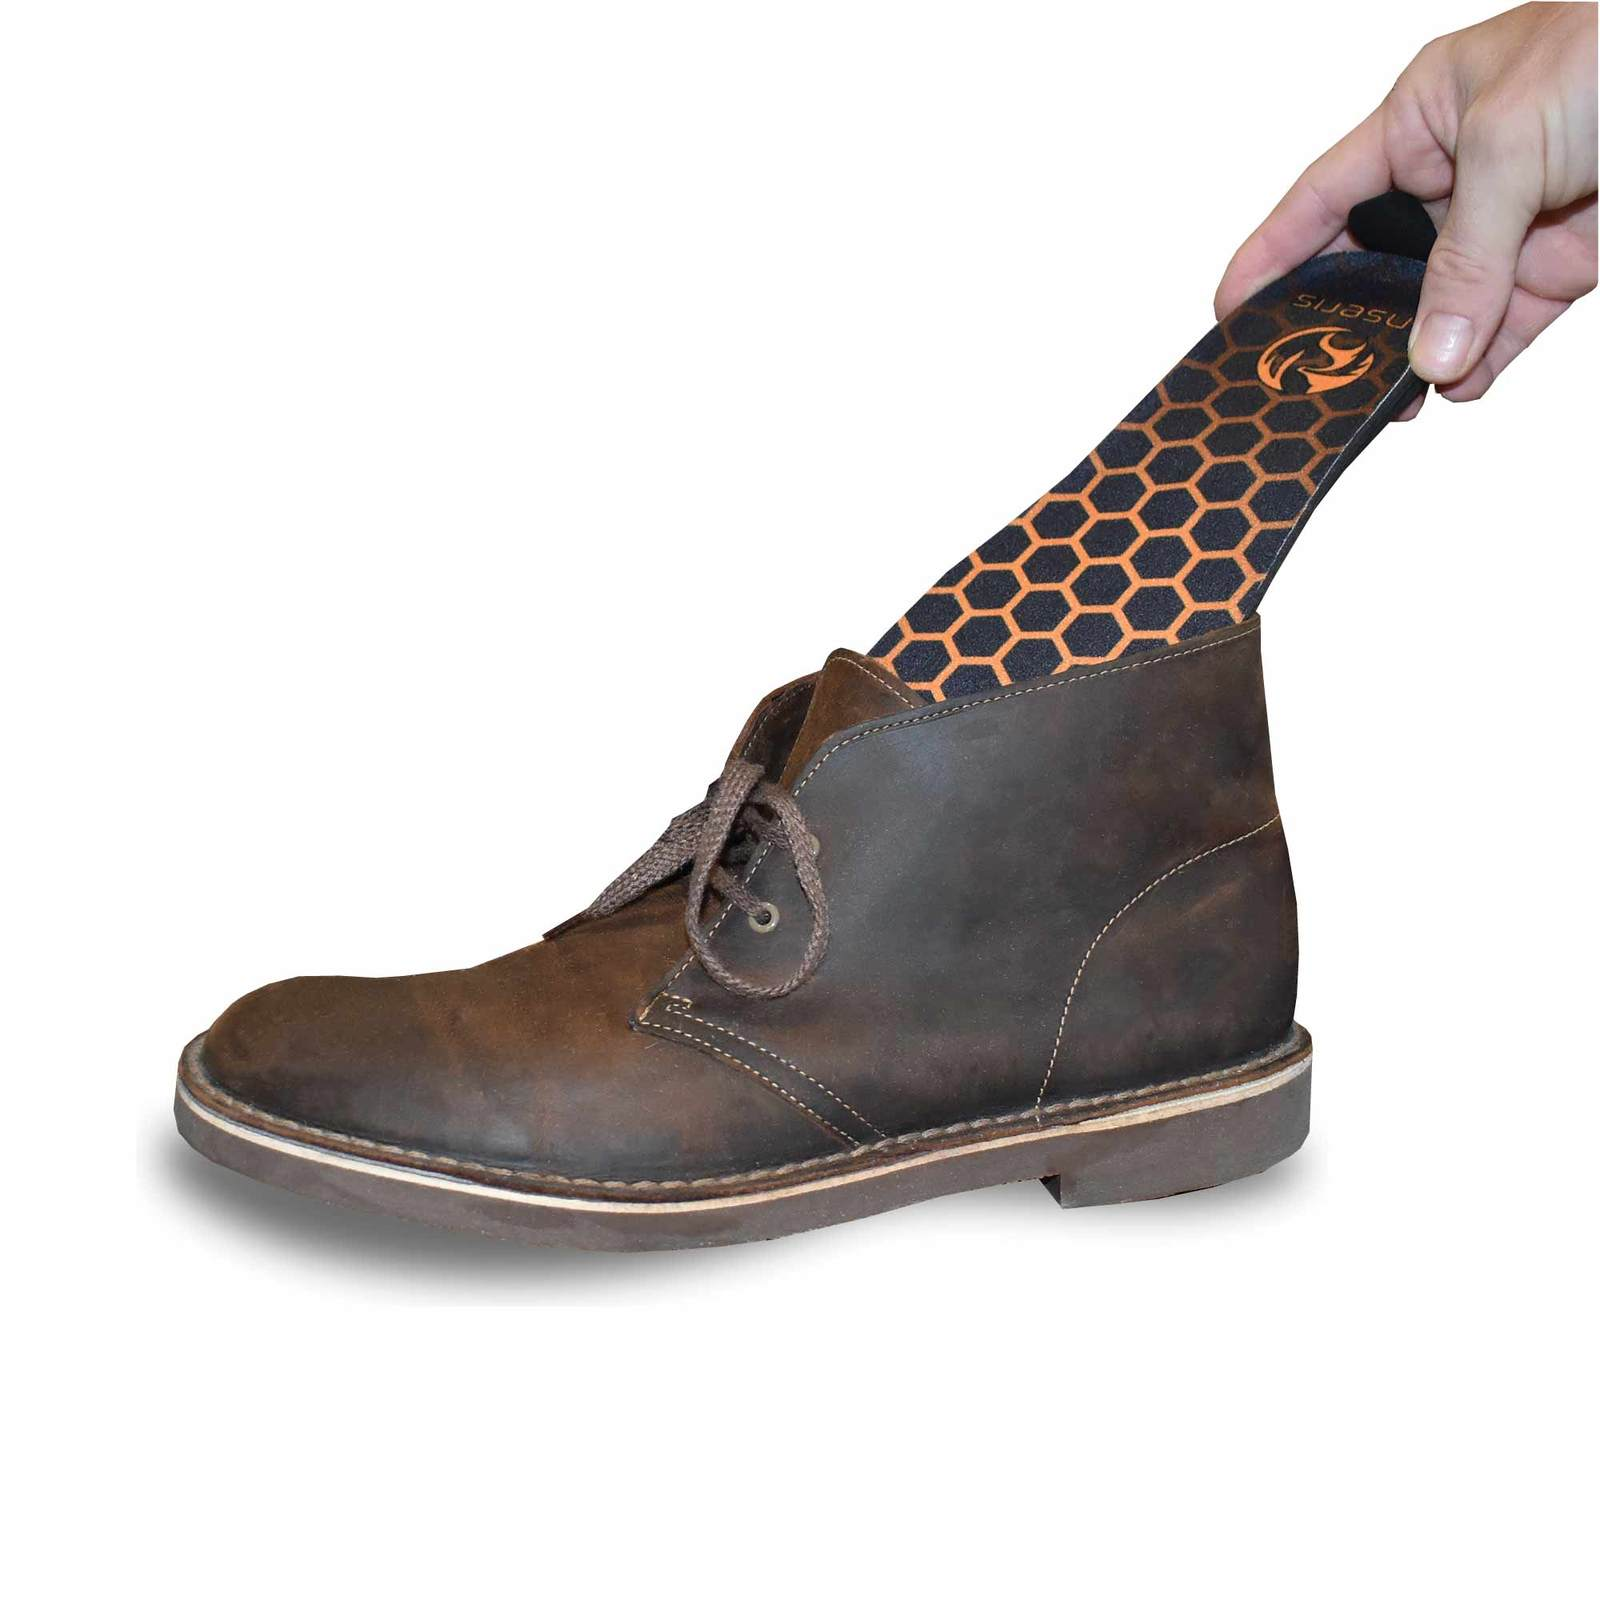 anseris rechargeable heated insoles fit any shoe or boot and are used to heat the foot with a remote control